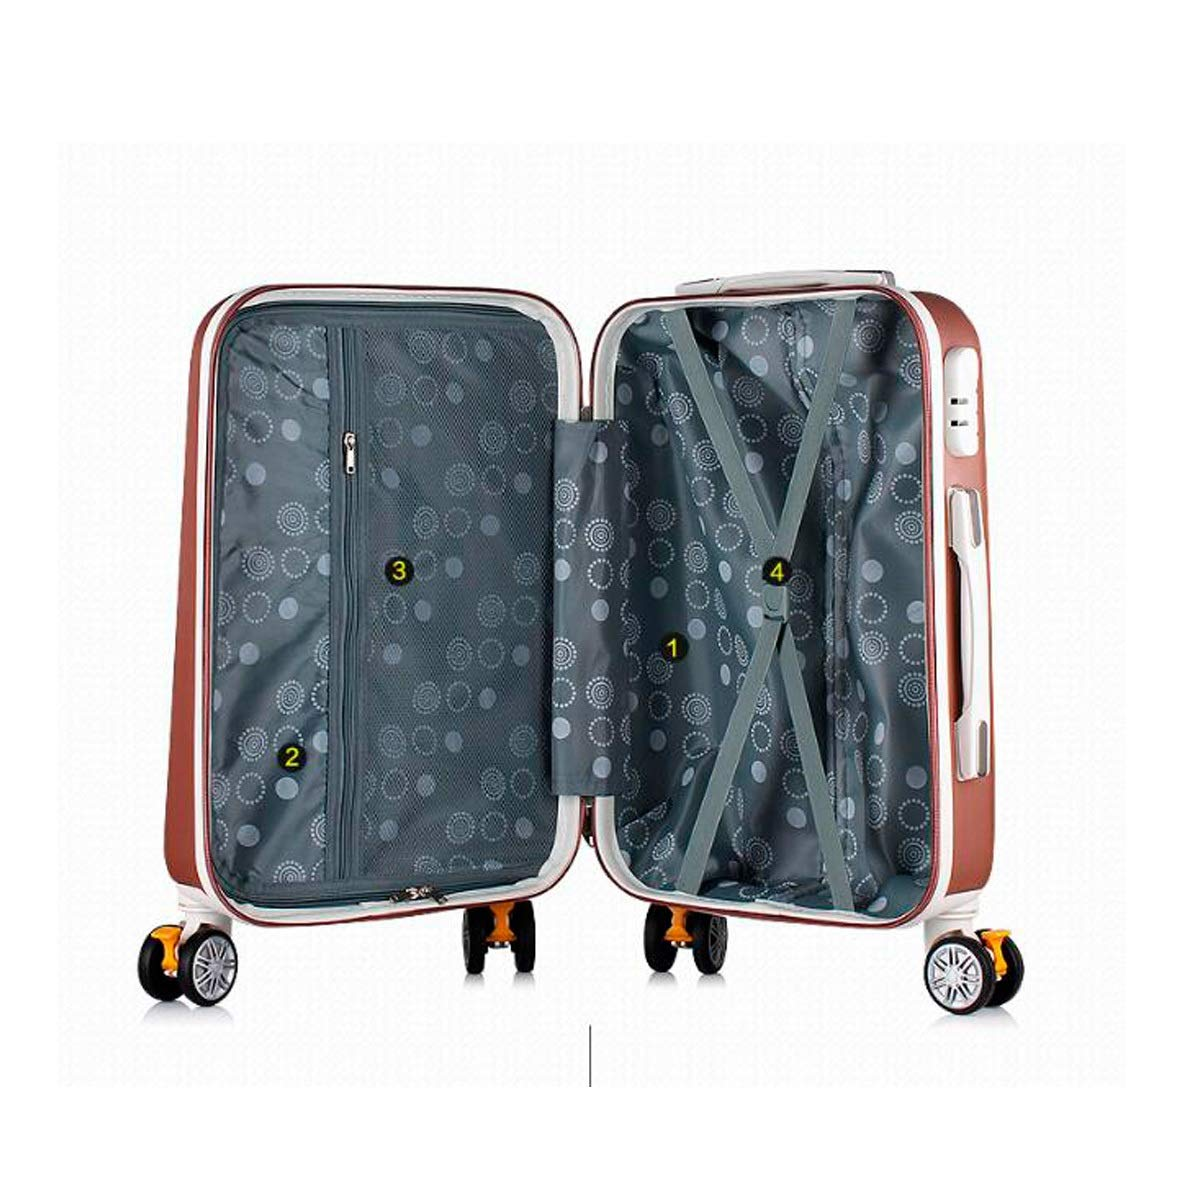 Carry Luggage Best Gift Black Latest Style Travel Storage Box Trolley Case Shengshihuizhong Hard Transfer Suitcase 20//22 Inch Letter Box Simple Style